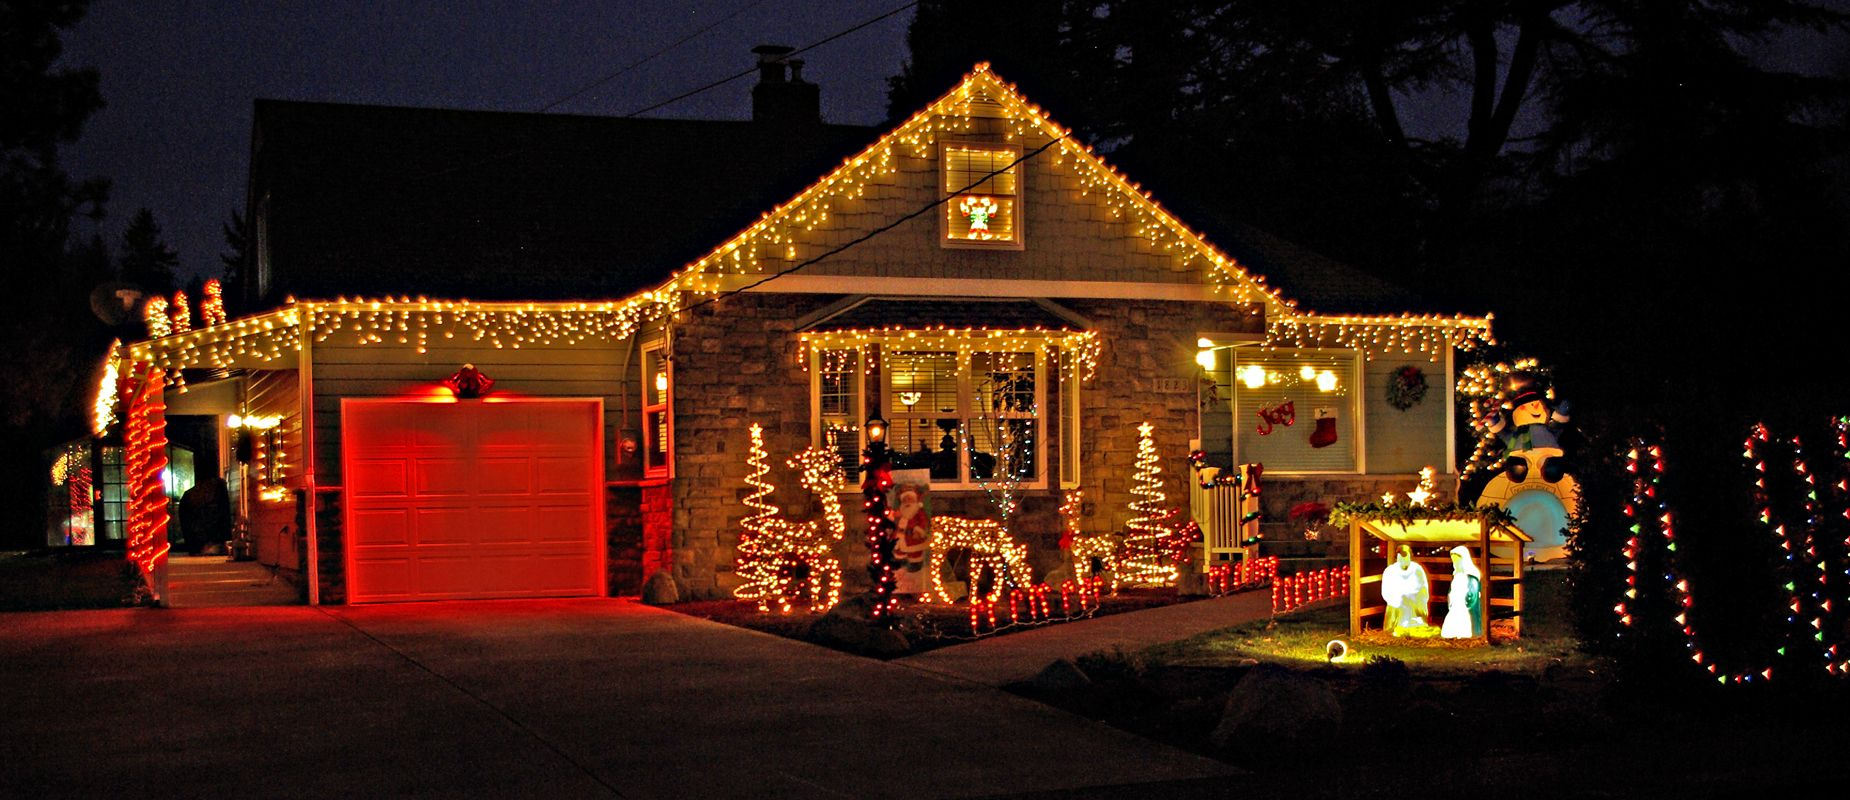 Candy cane christmas lights google search winter candy cane christmas lights google search aloadofball Images